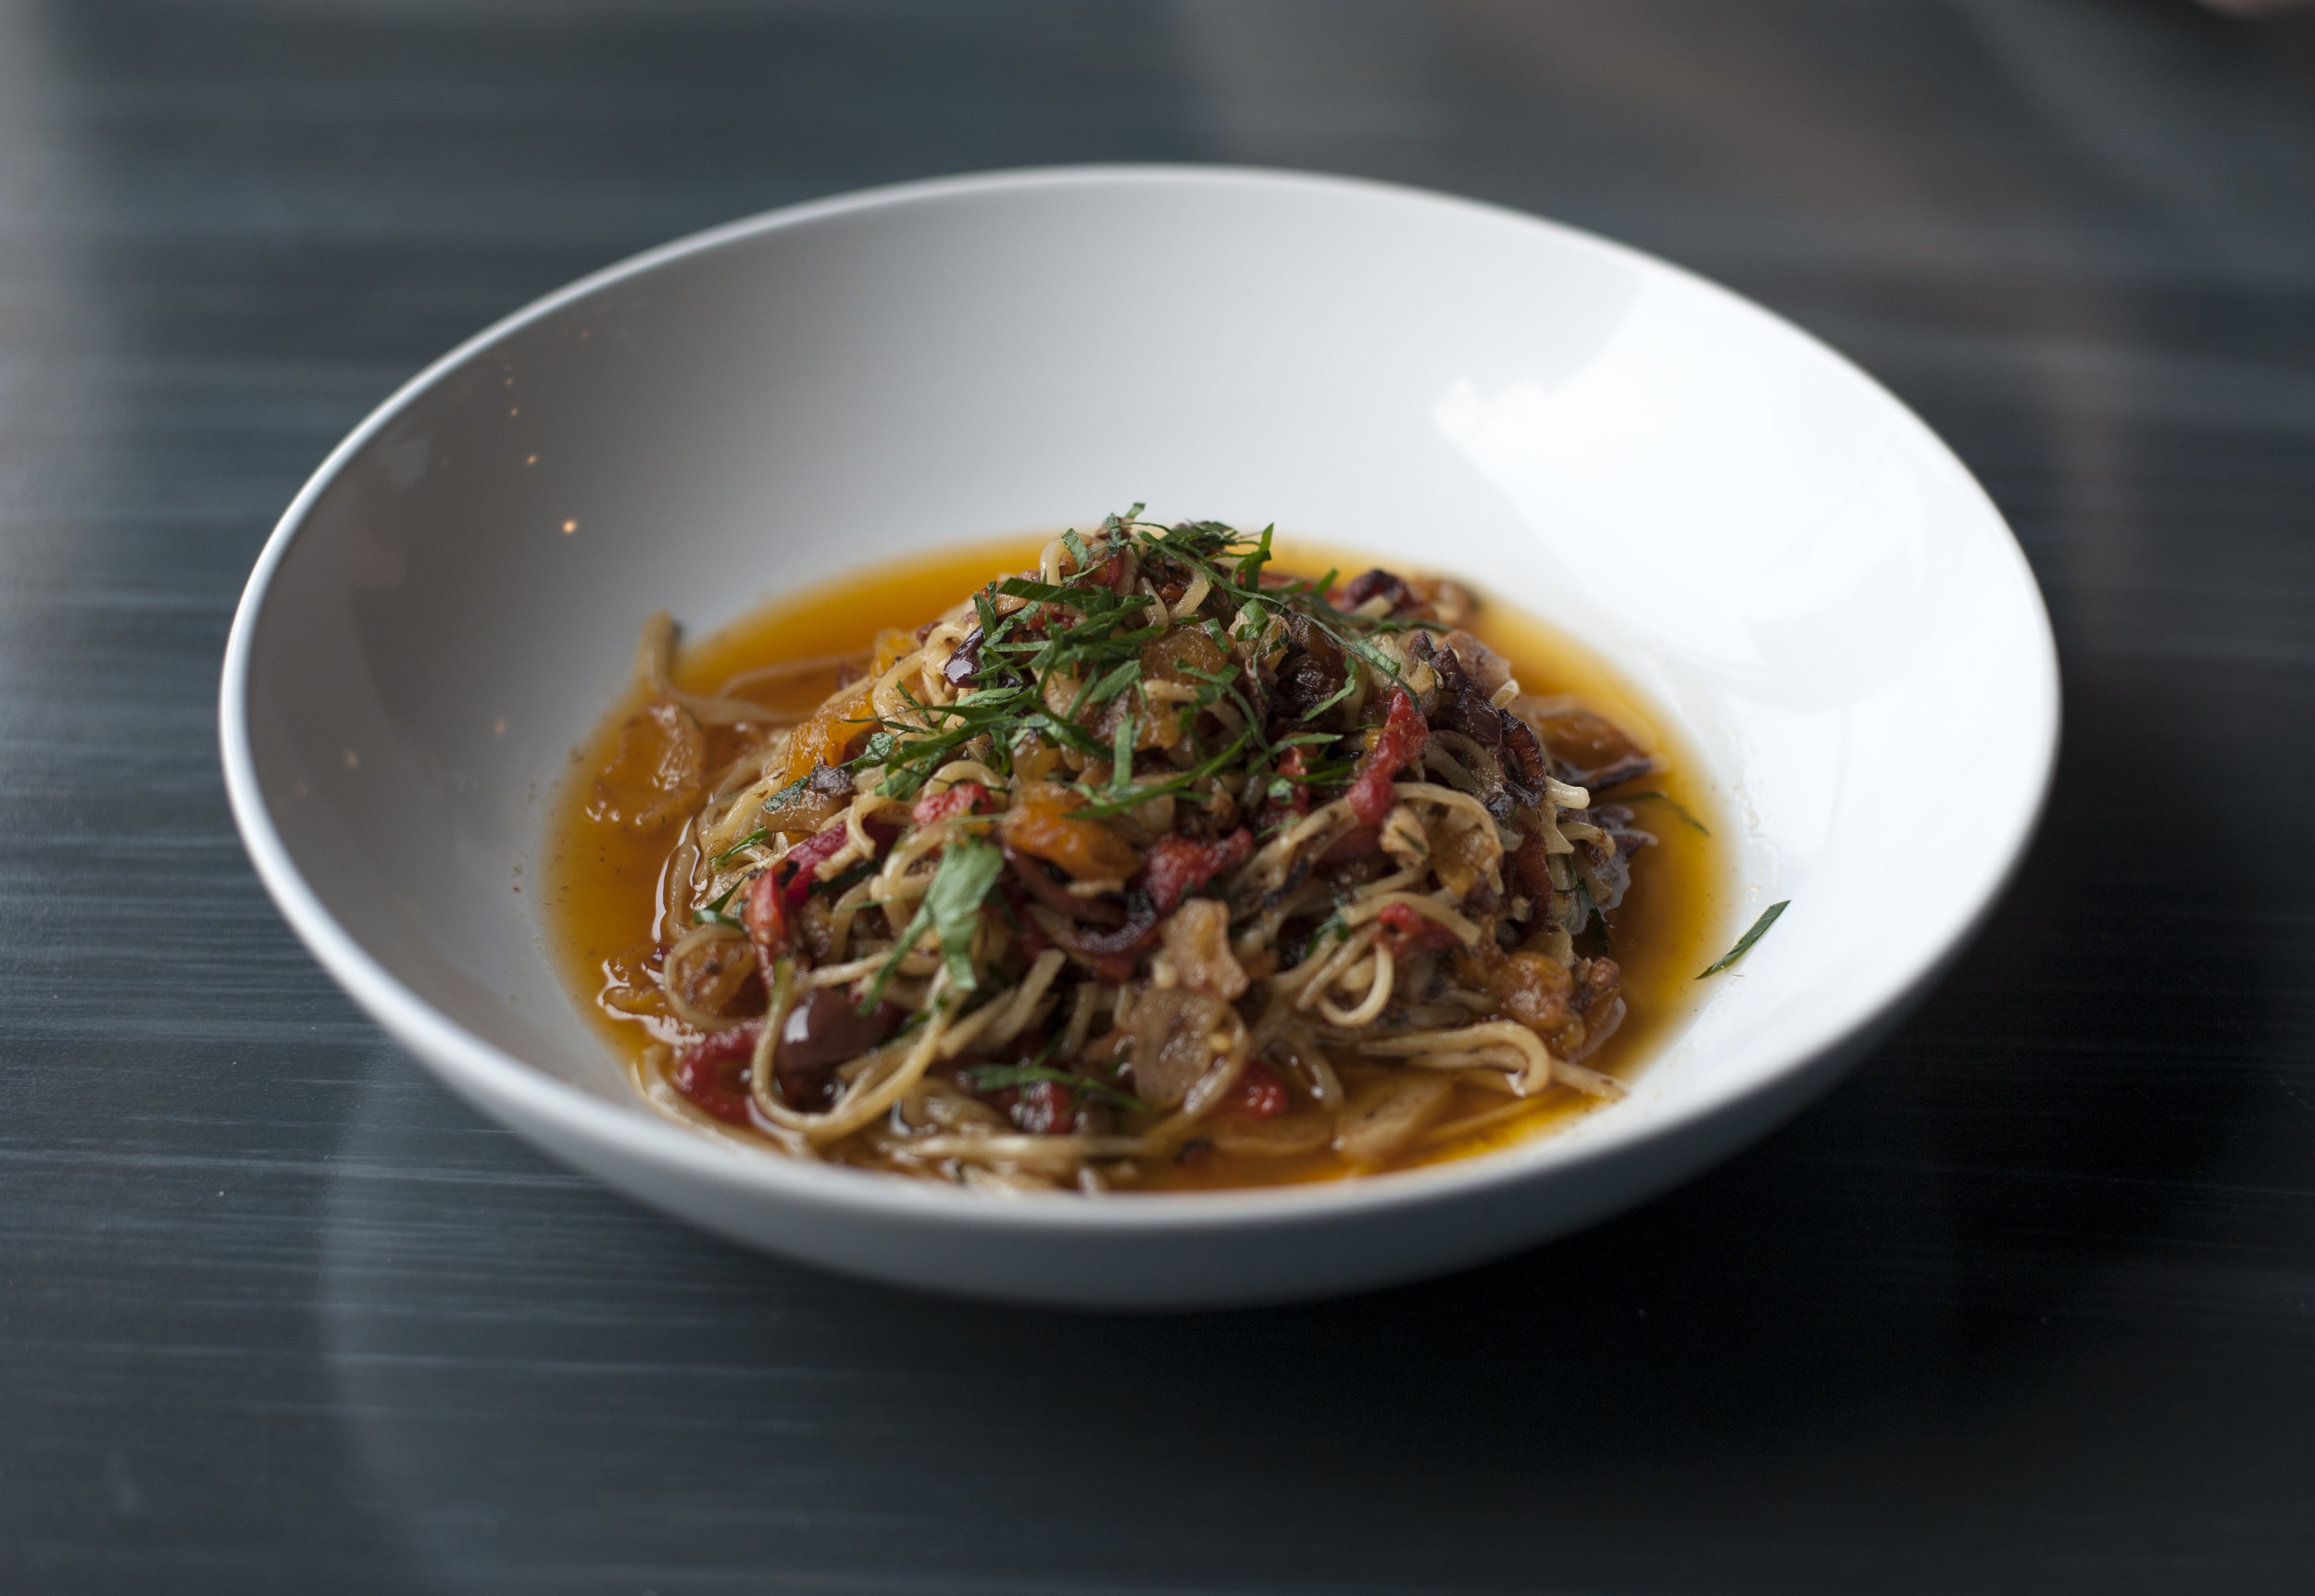 La Bamba showcases homemade linguine with fire-roasted red peppers, Kalamata olives, sardines and dried apricots, stepped in an olive oil and white wine sauce, for an entree that stacks bold taste for a comprehensively satisfying meal.